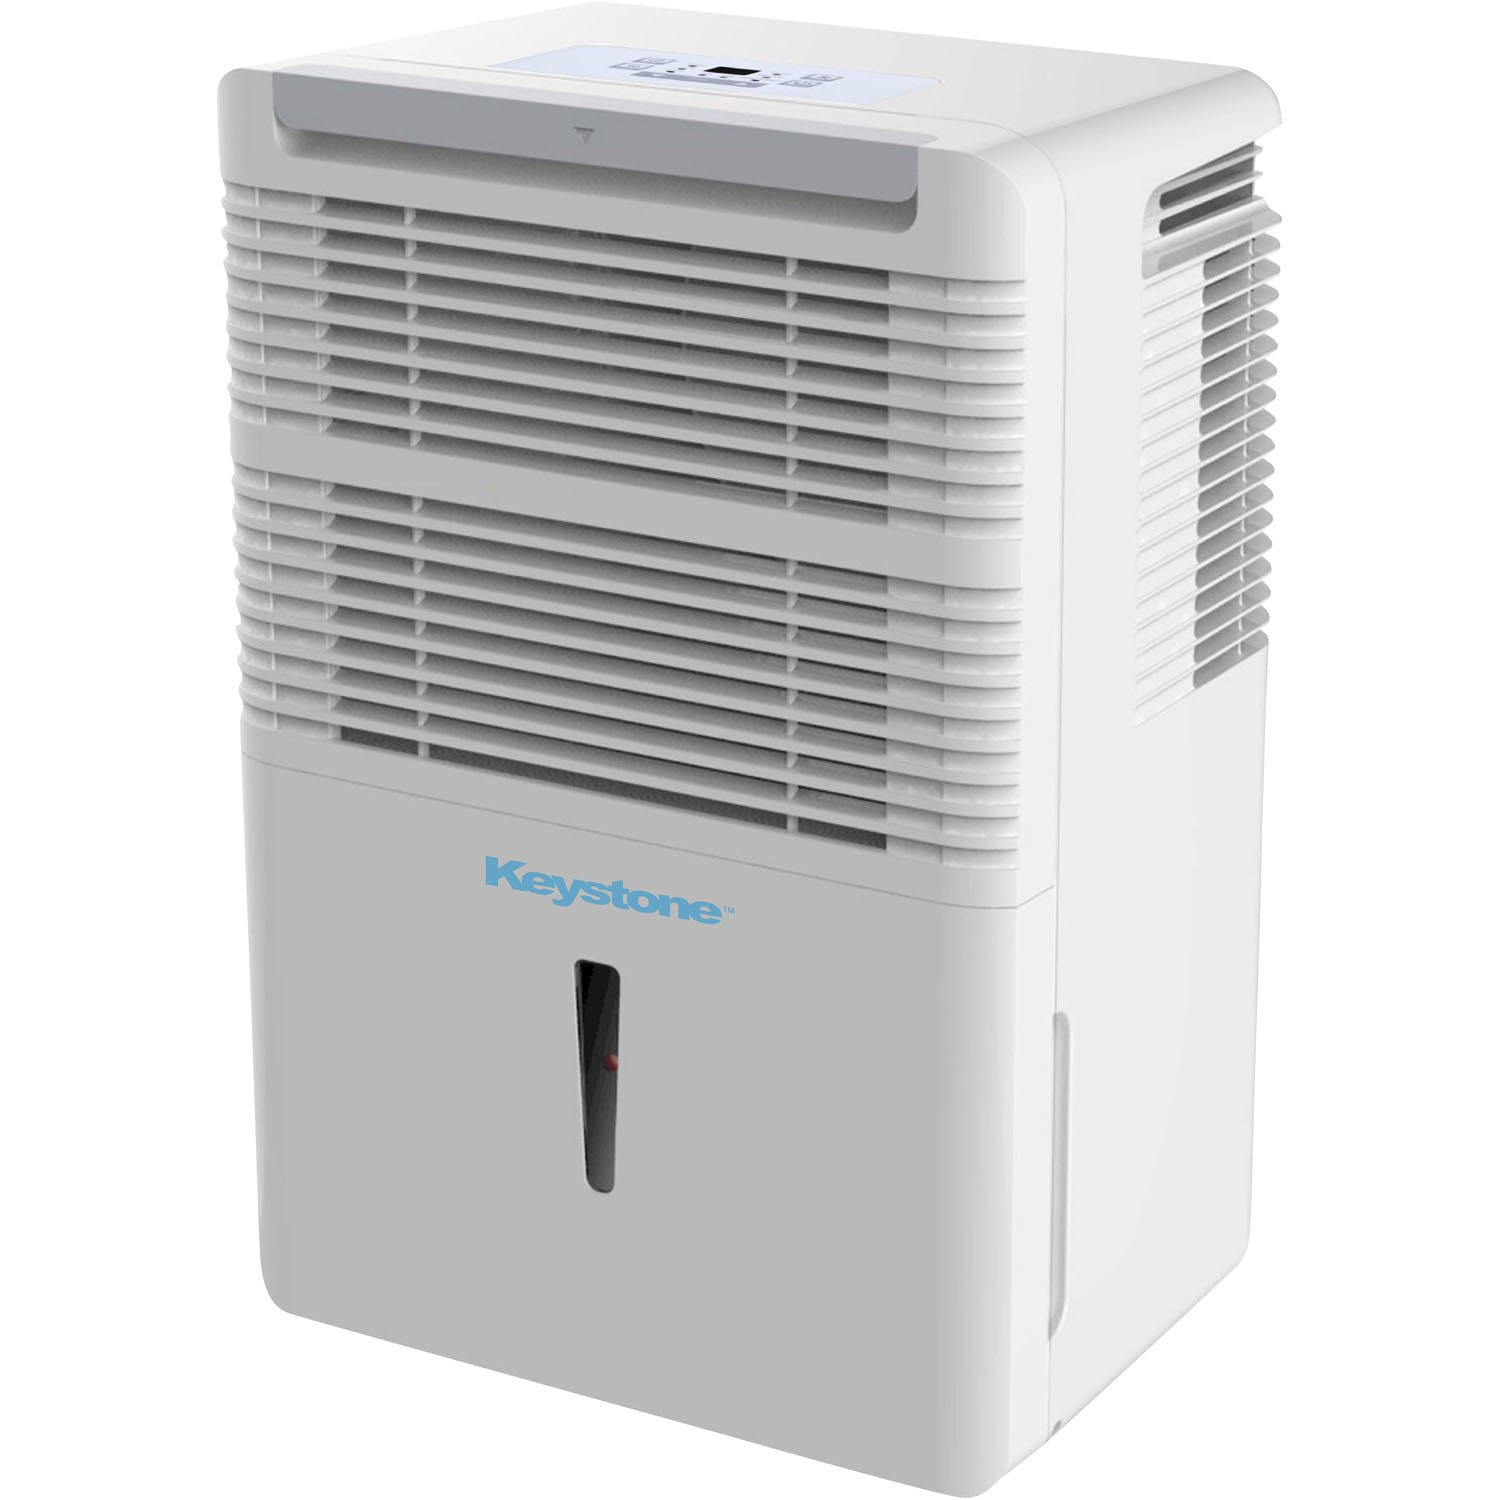 kstad50b 50 pint dehumidifier check discounted price on amazon  #31749A